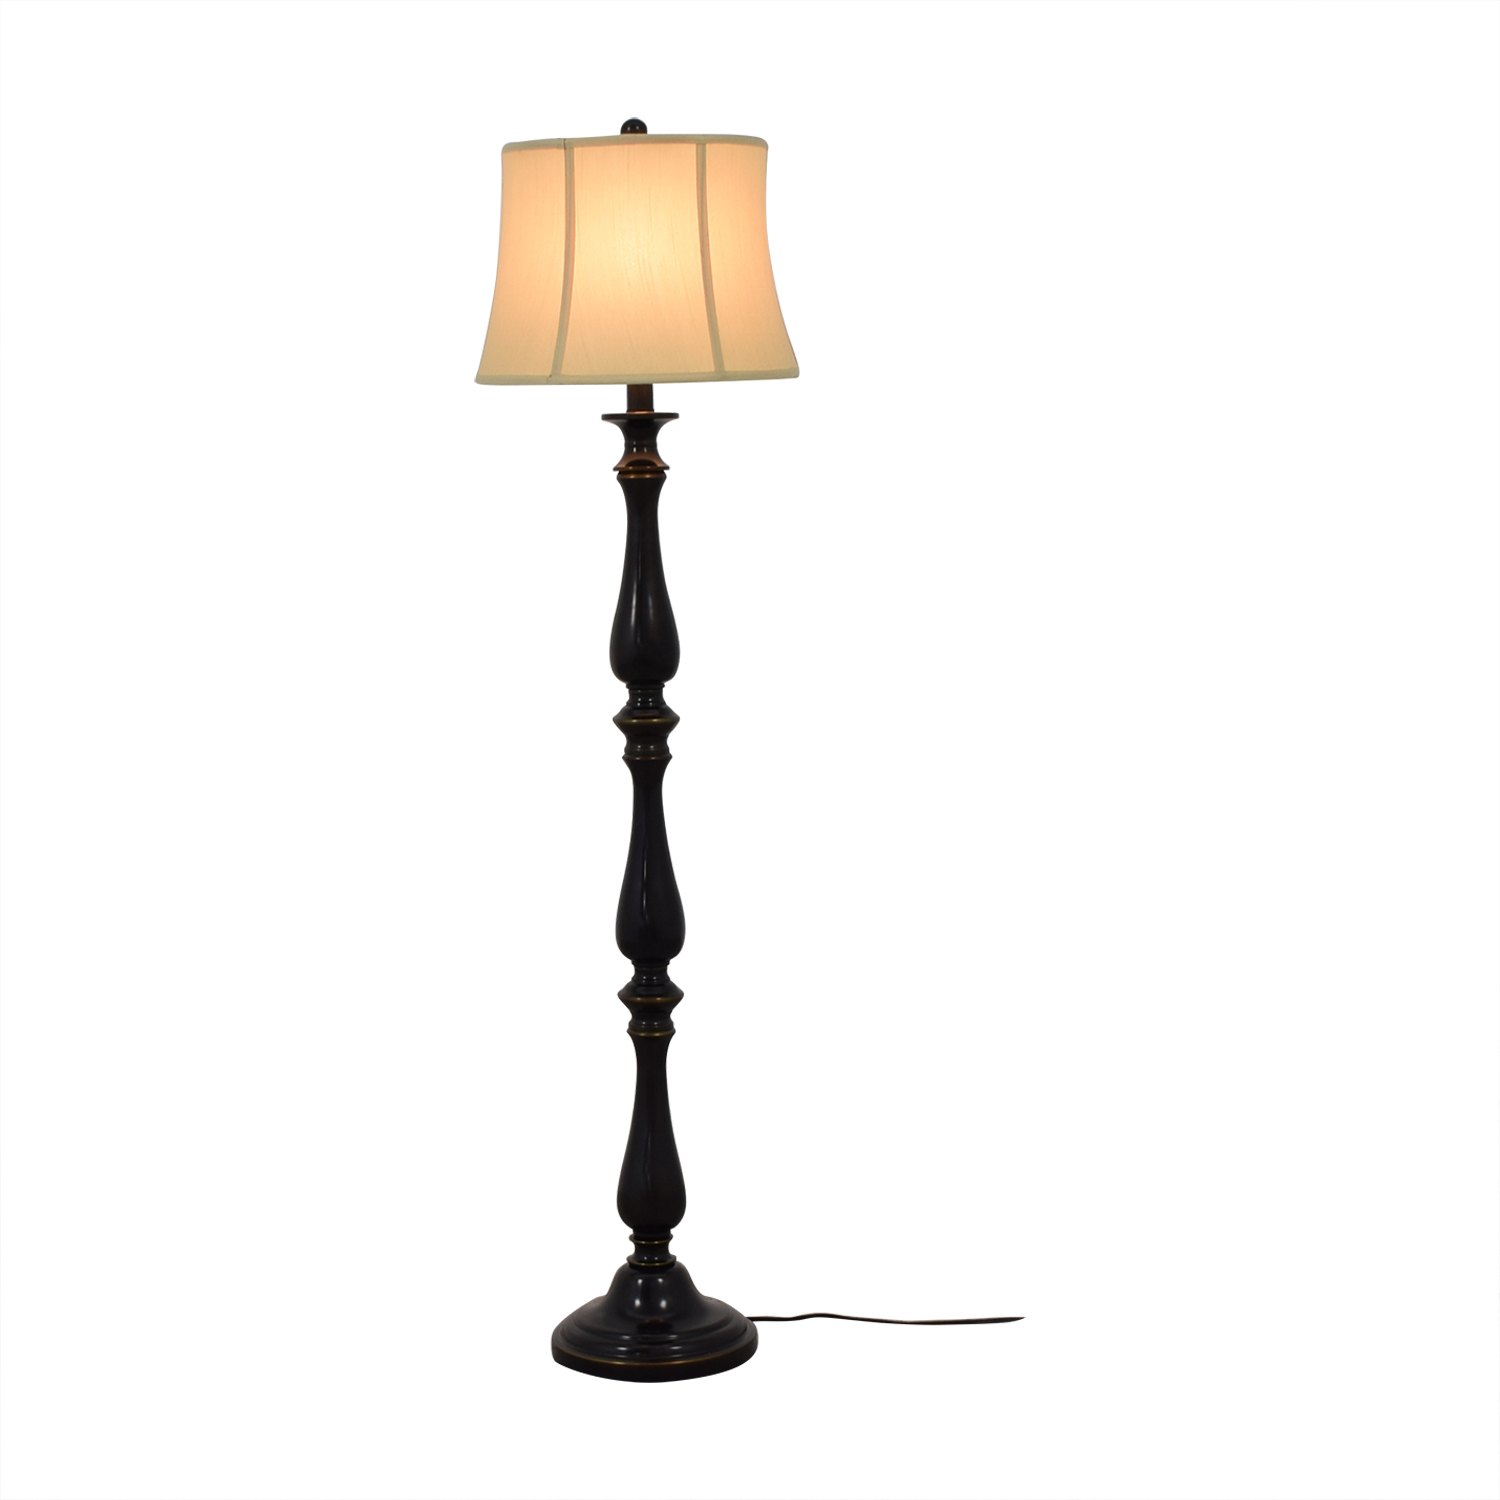 Decorative Floor Lamp / Decor